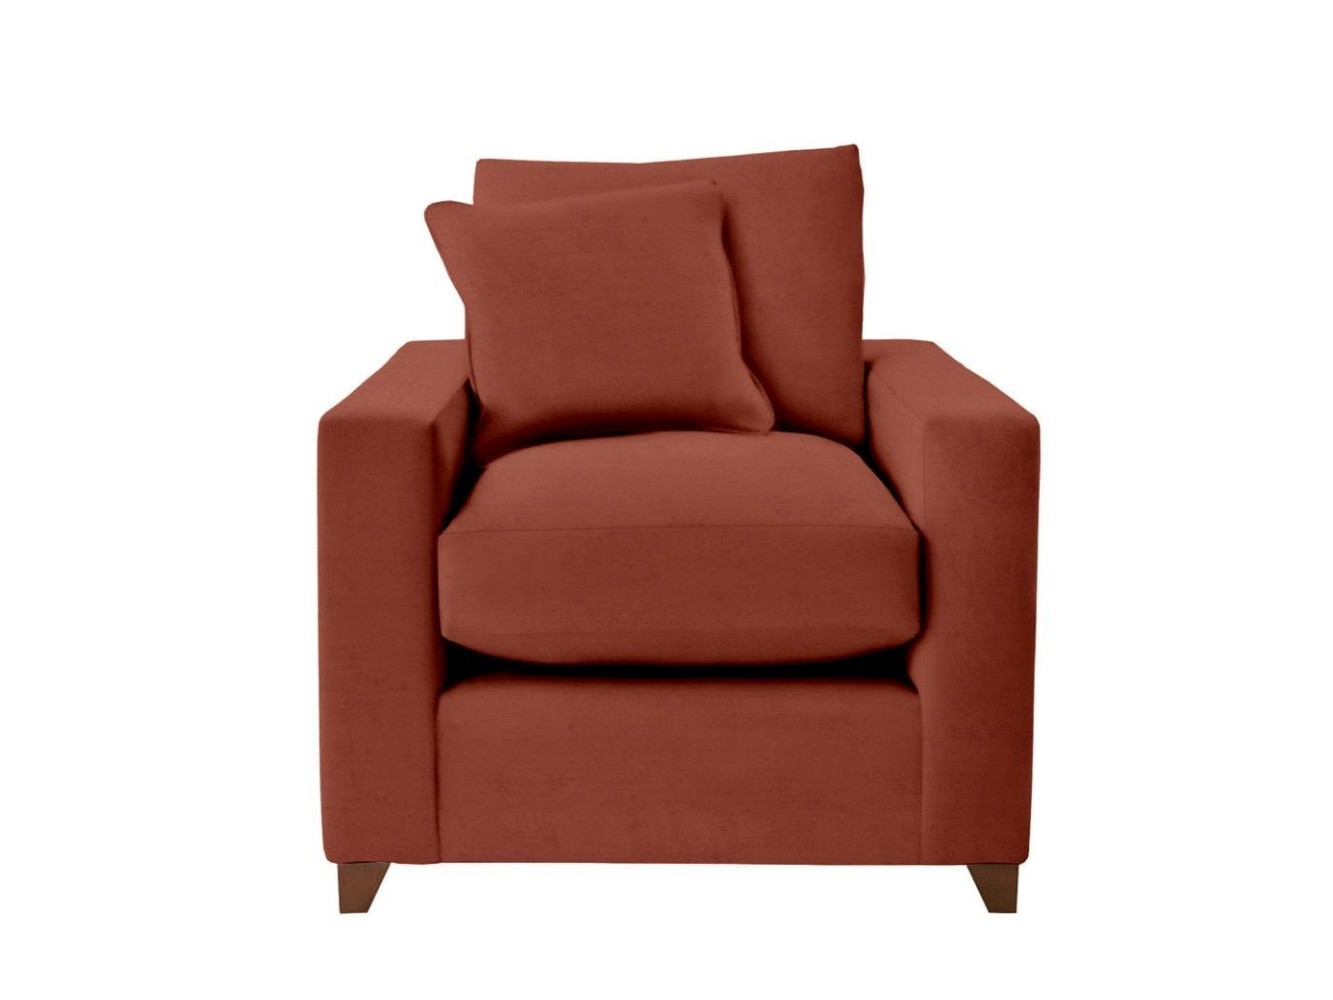 This is how I look in House Velvet Umber (Discontinued Fabric) with silliconized hollow fibre seat cushions